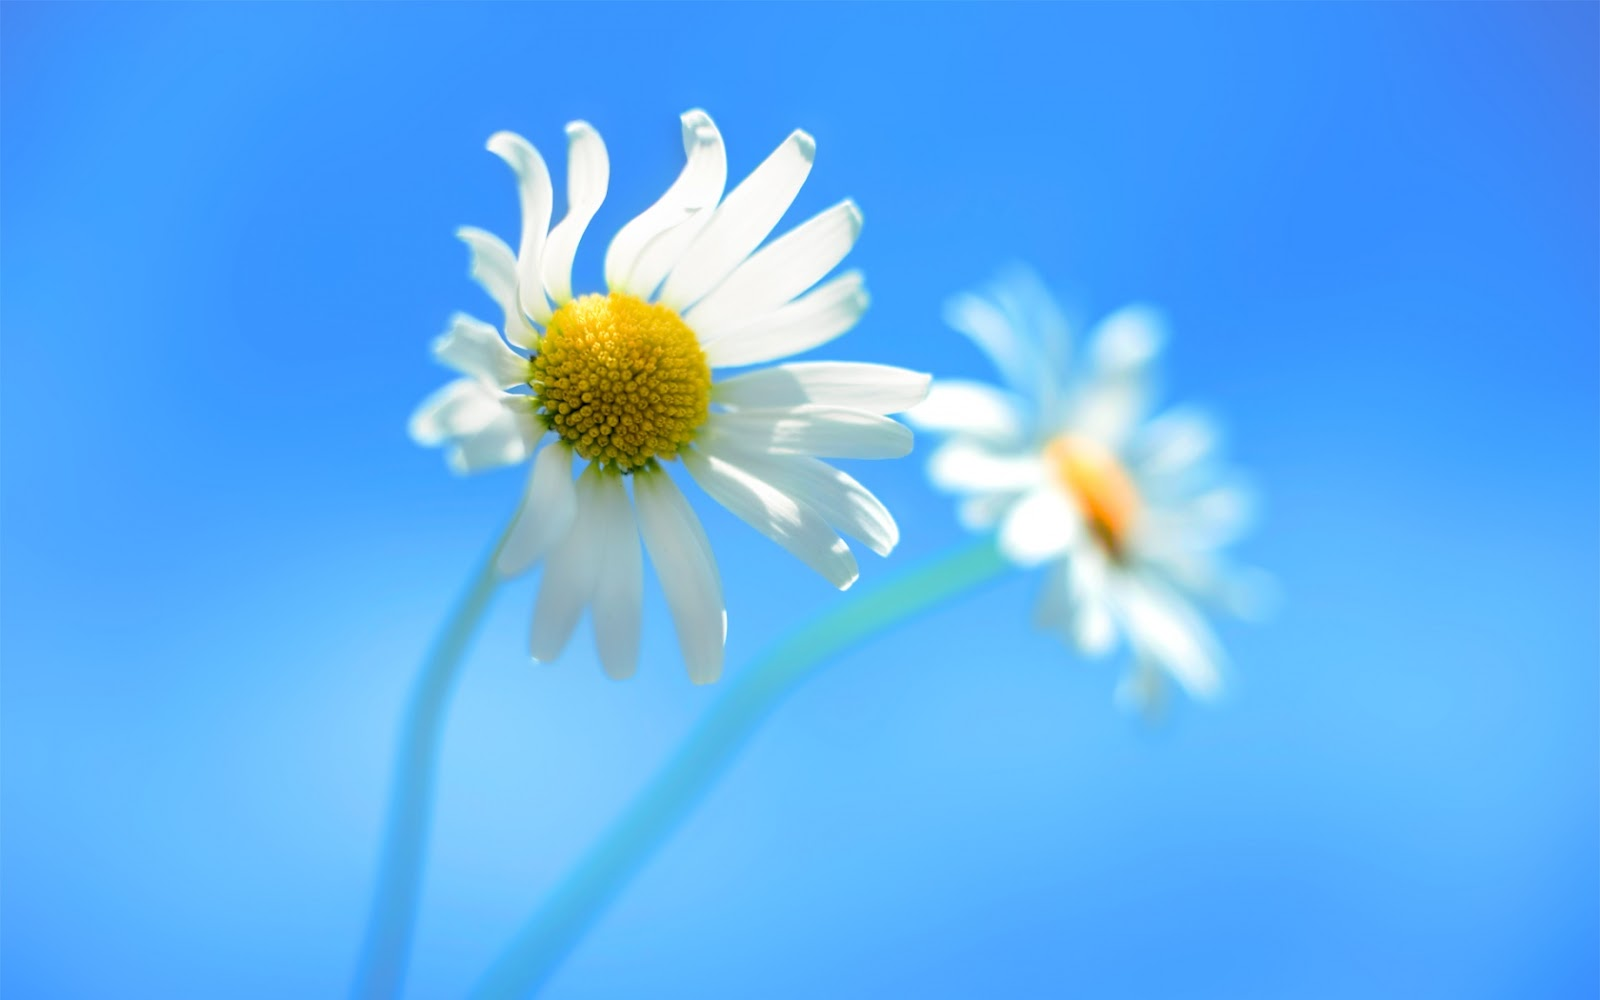 brighton narcissus and daisy flowers wallpapers - Wallpaper brighton narcissus and daisy flowers